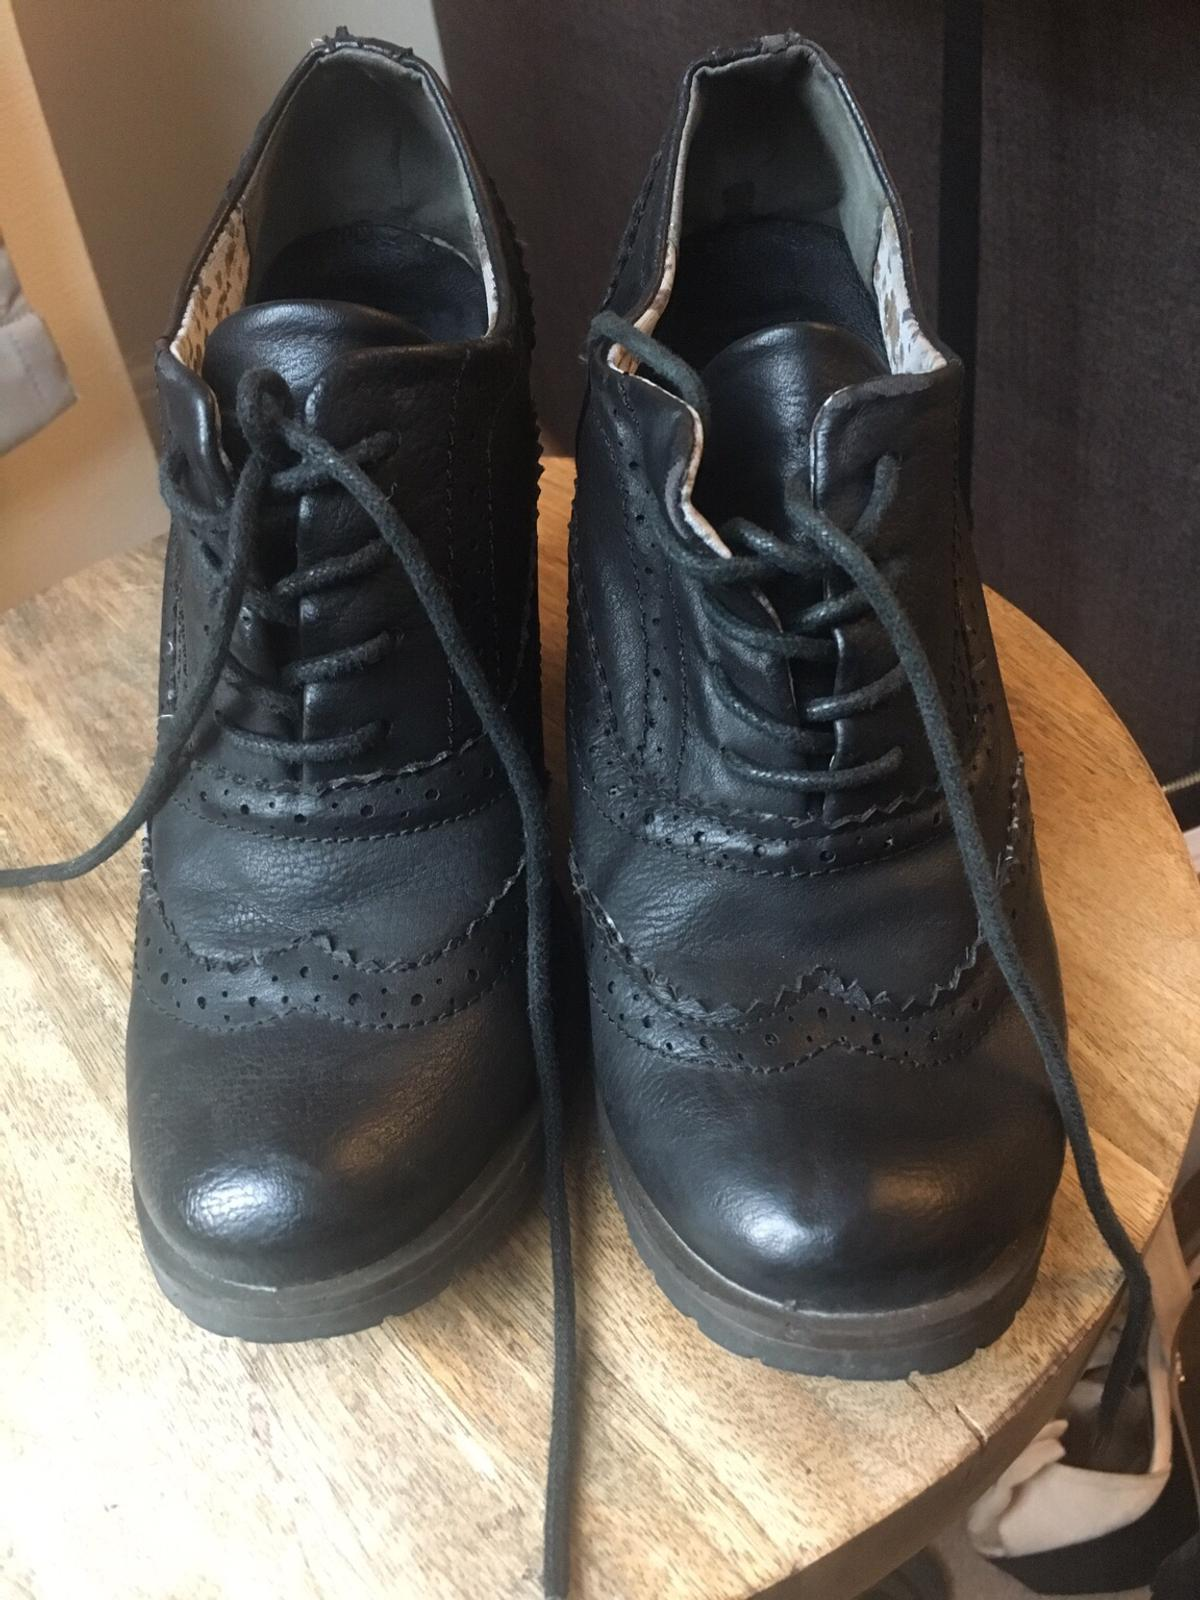 Worn about twice for work. Really comfy leather shoes, perfect for the office. Size 4.